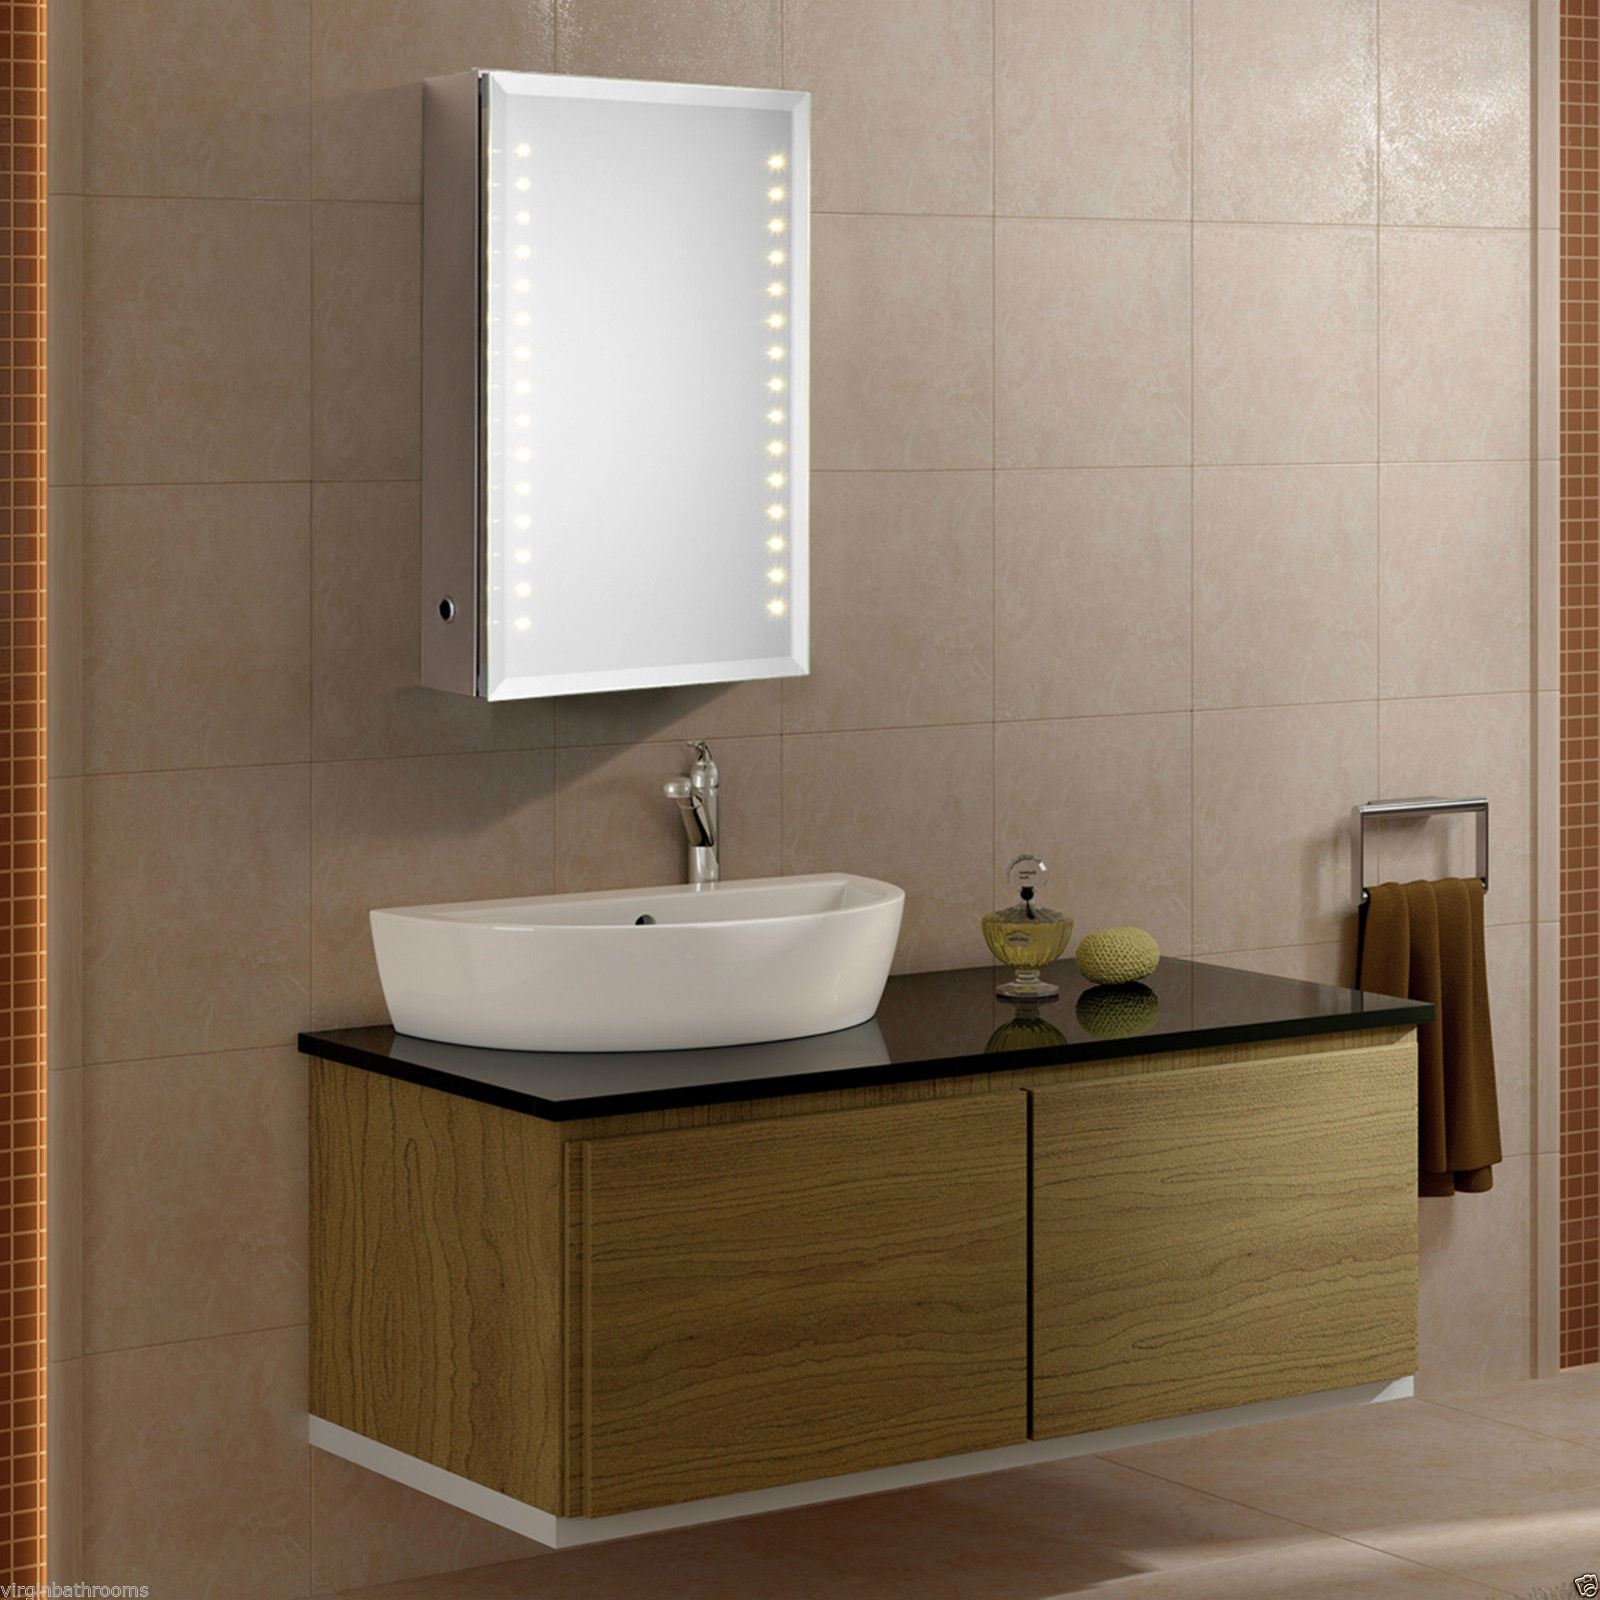 Bathroom mirror cabinets with light and shaver socket - Illuminated Bathroom Cabinets Mirrors Shaver Socket Saturn Led Illuminated Bathroom Mirror Cabinet Infra Red Sensor